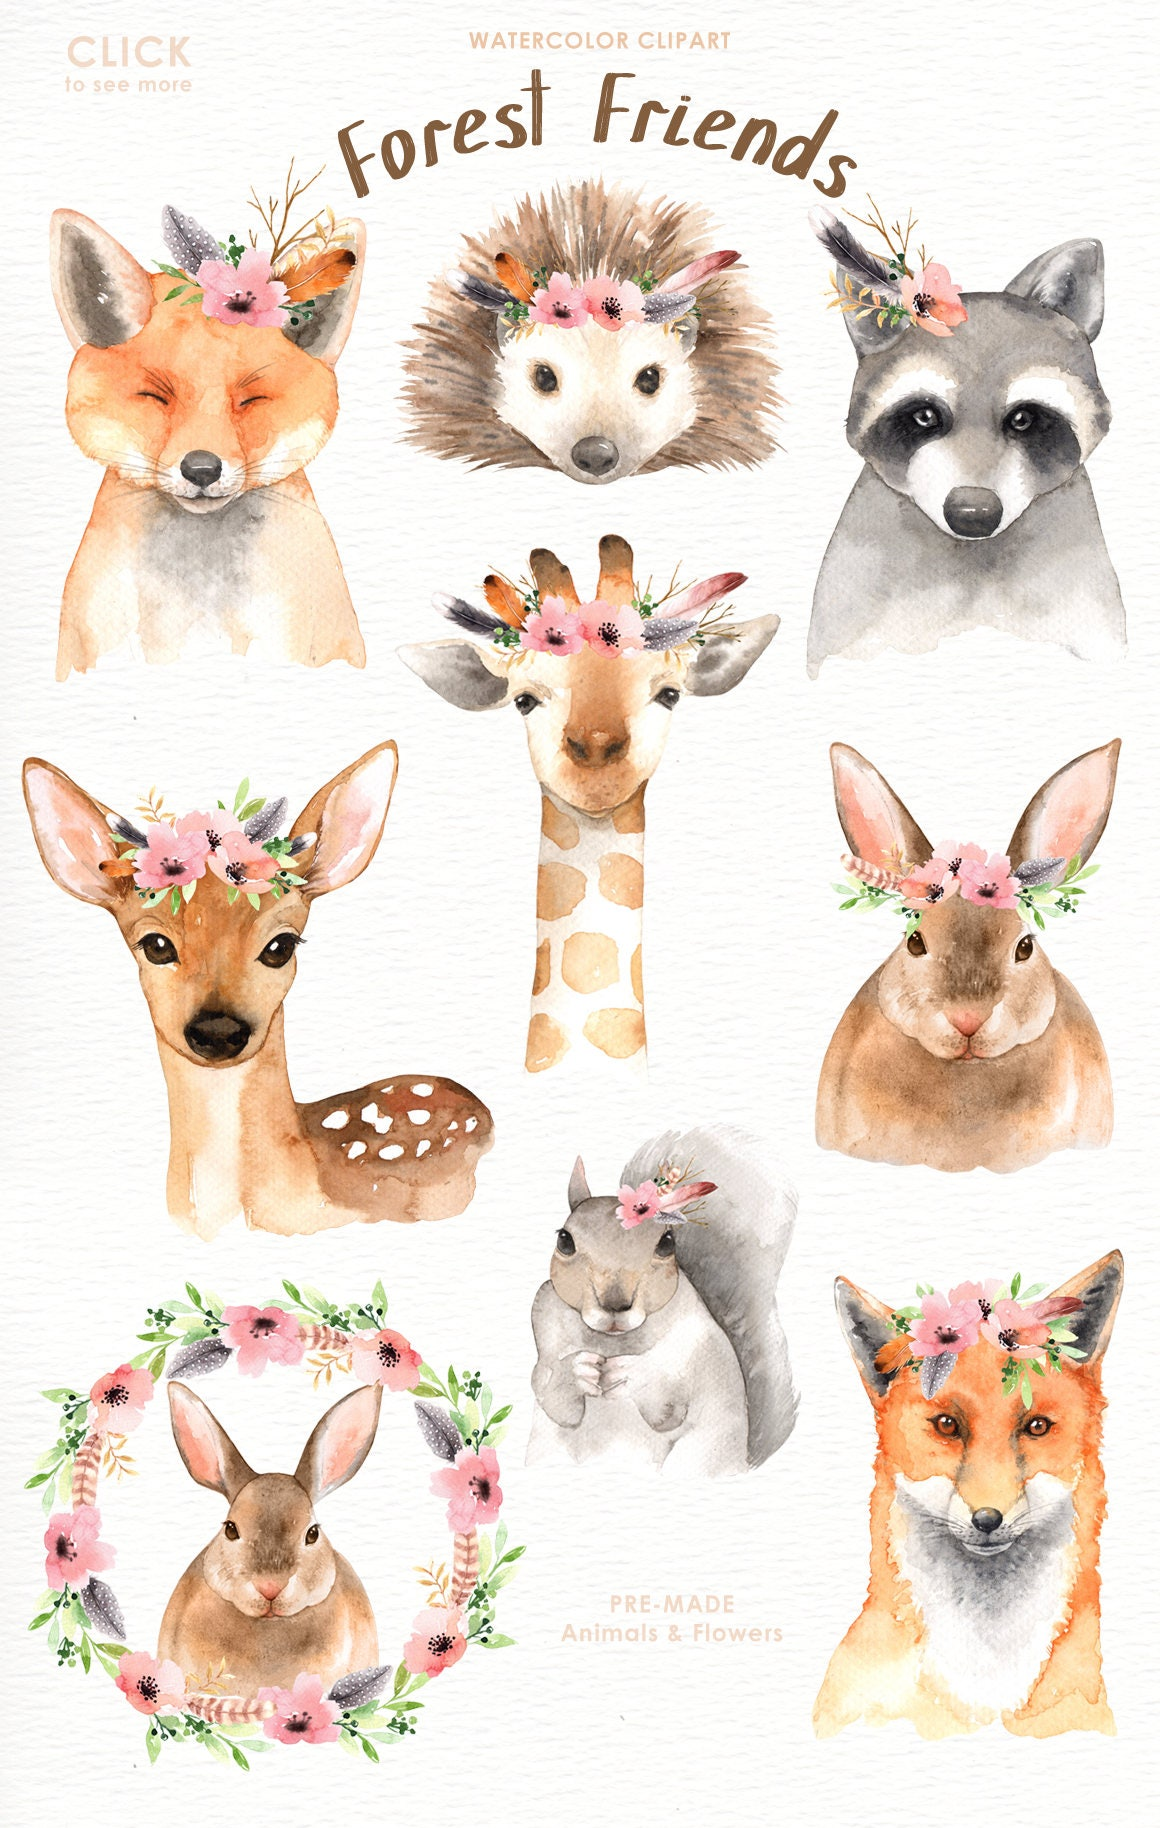 Forest Friends Watercolor Clip Art Woodland Animals Kids